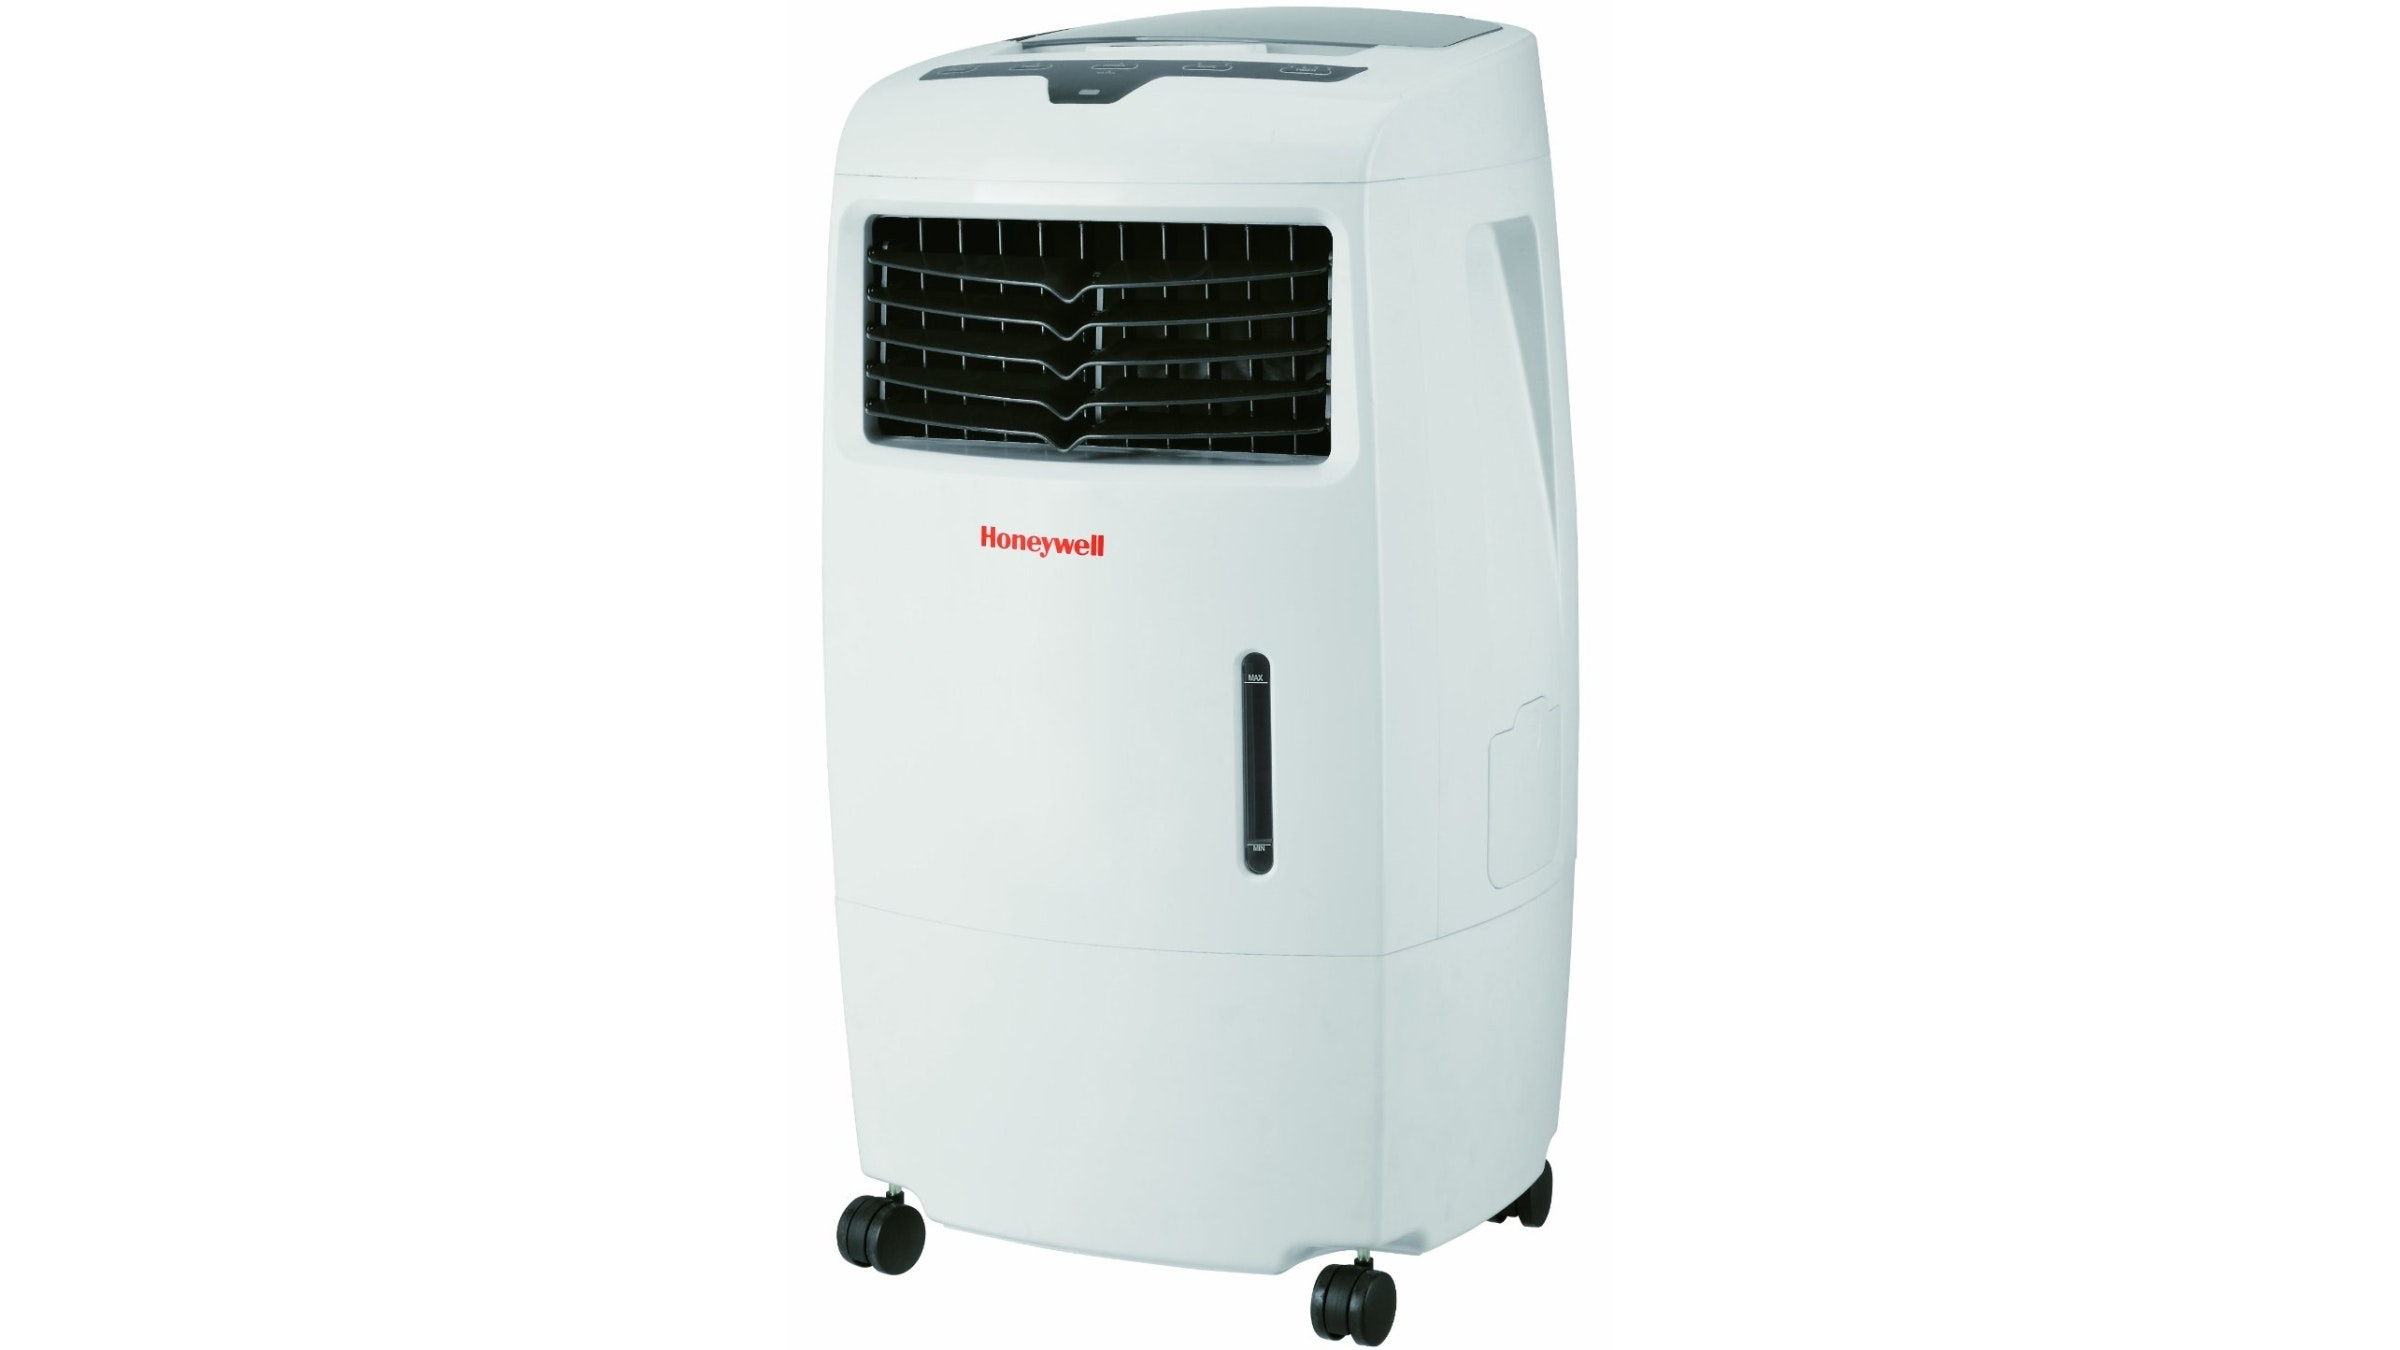 Honeywell 25L Indoor Evaporative Air Cooler Harvey Norman Malaysia #AC251F